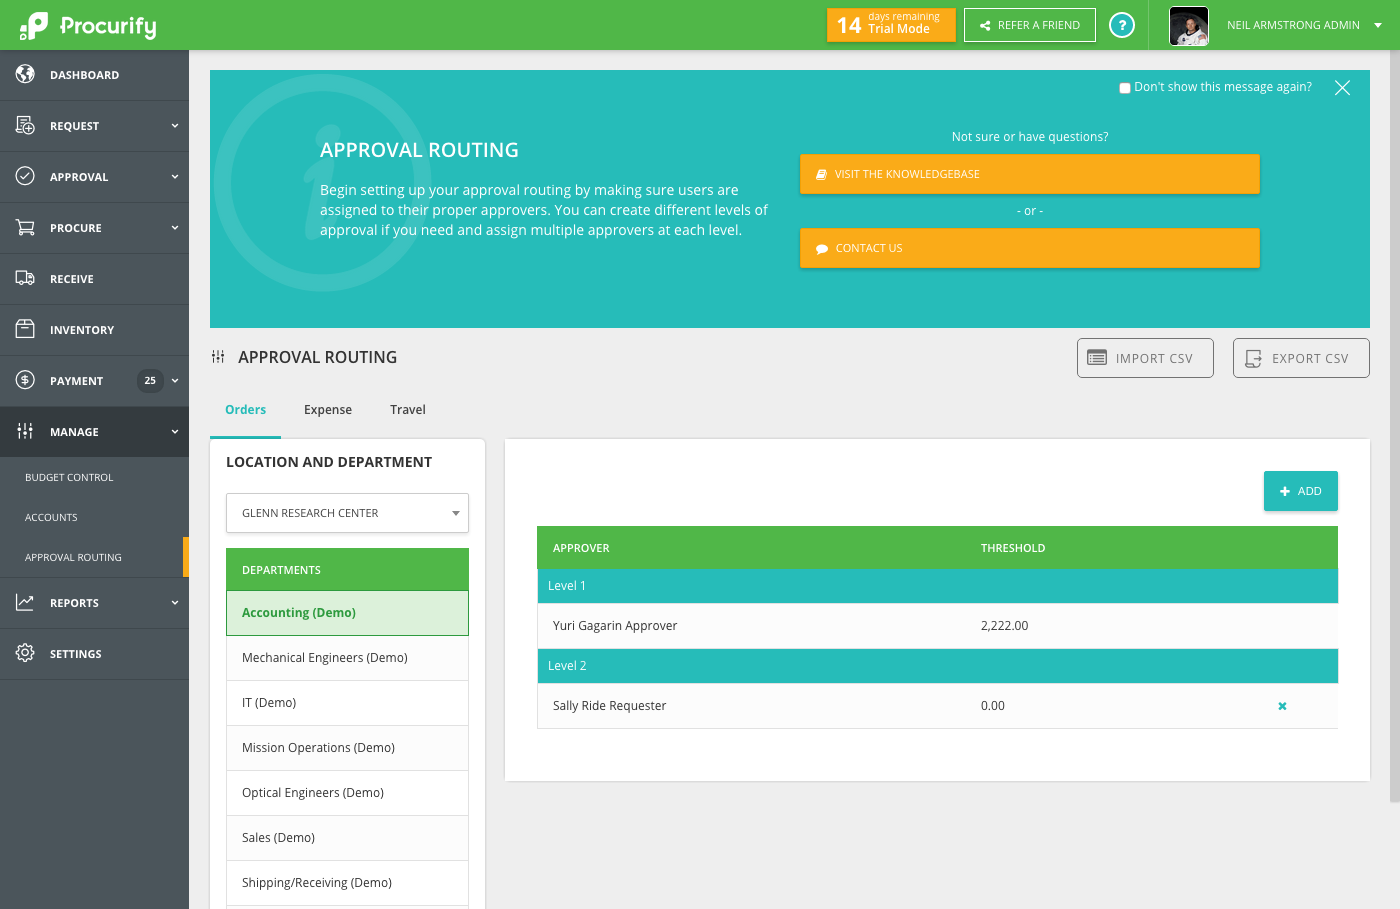 Approval Routing & User Account Roles